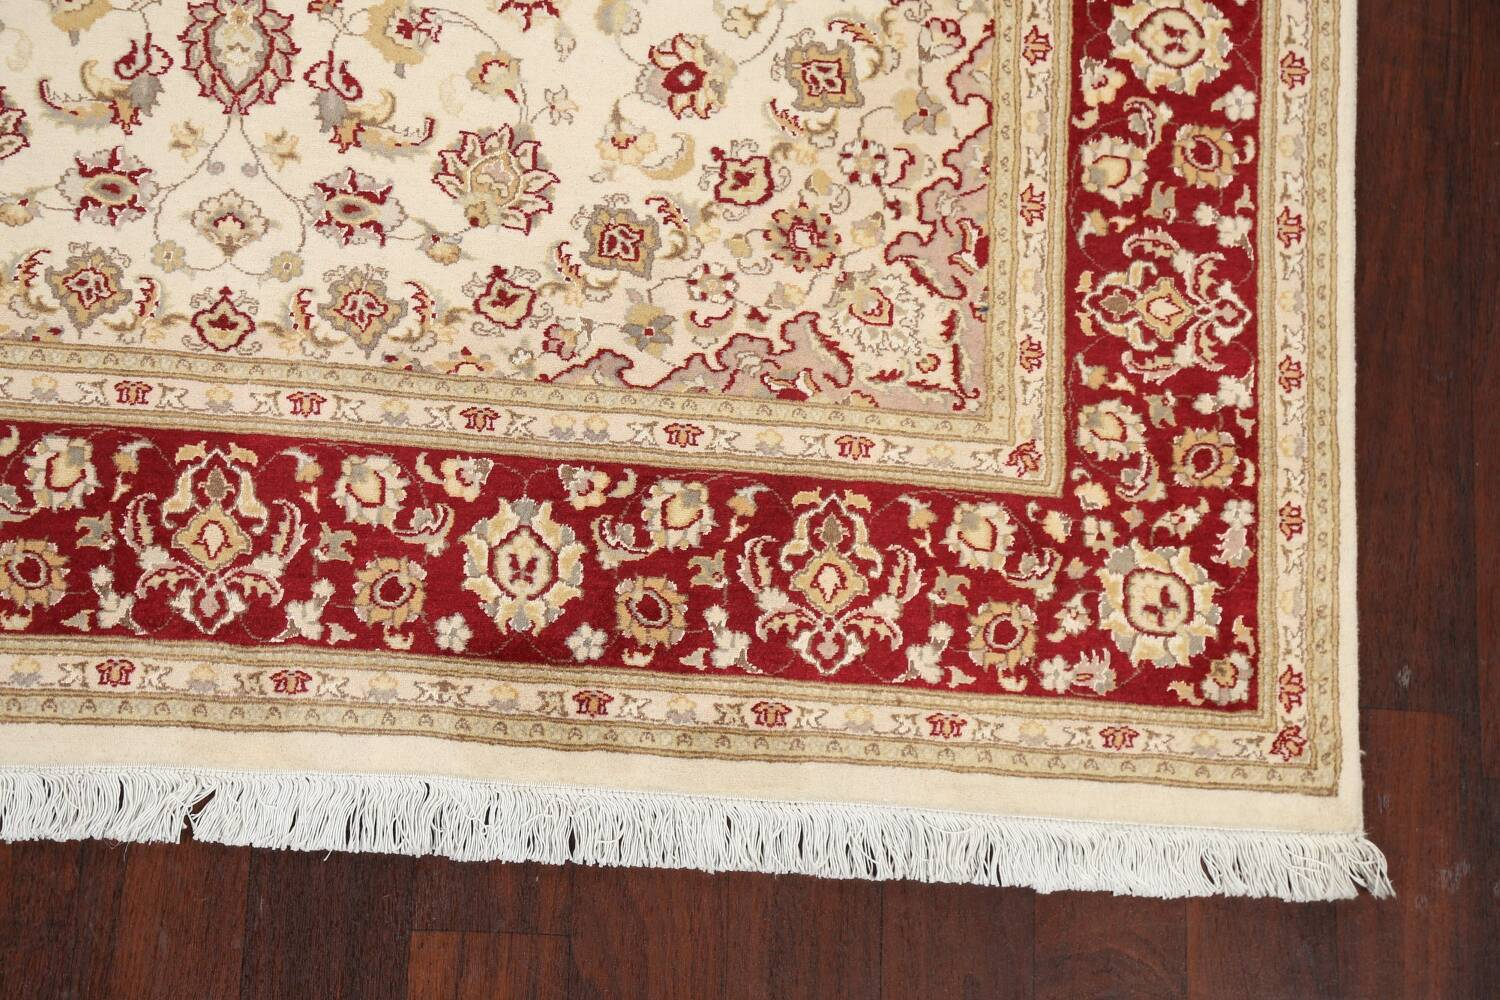 100% Vegetable Dye Floral Tabriz Oriental Area Rug 6x9 image 6